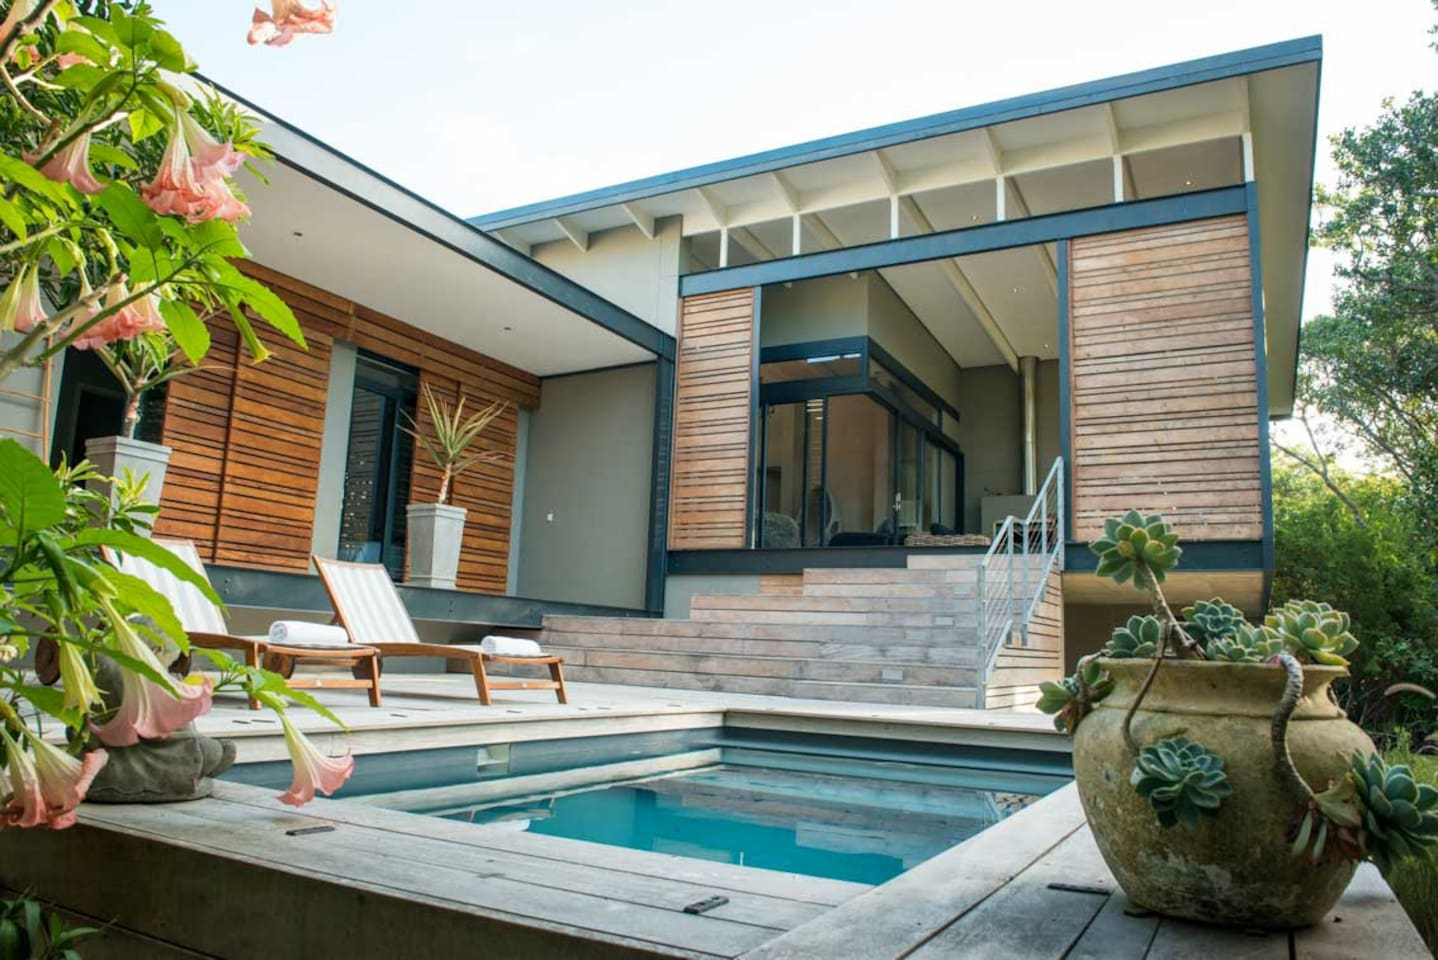 Deck with pool leading up to the lifestyle patio